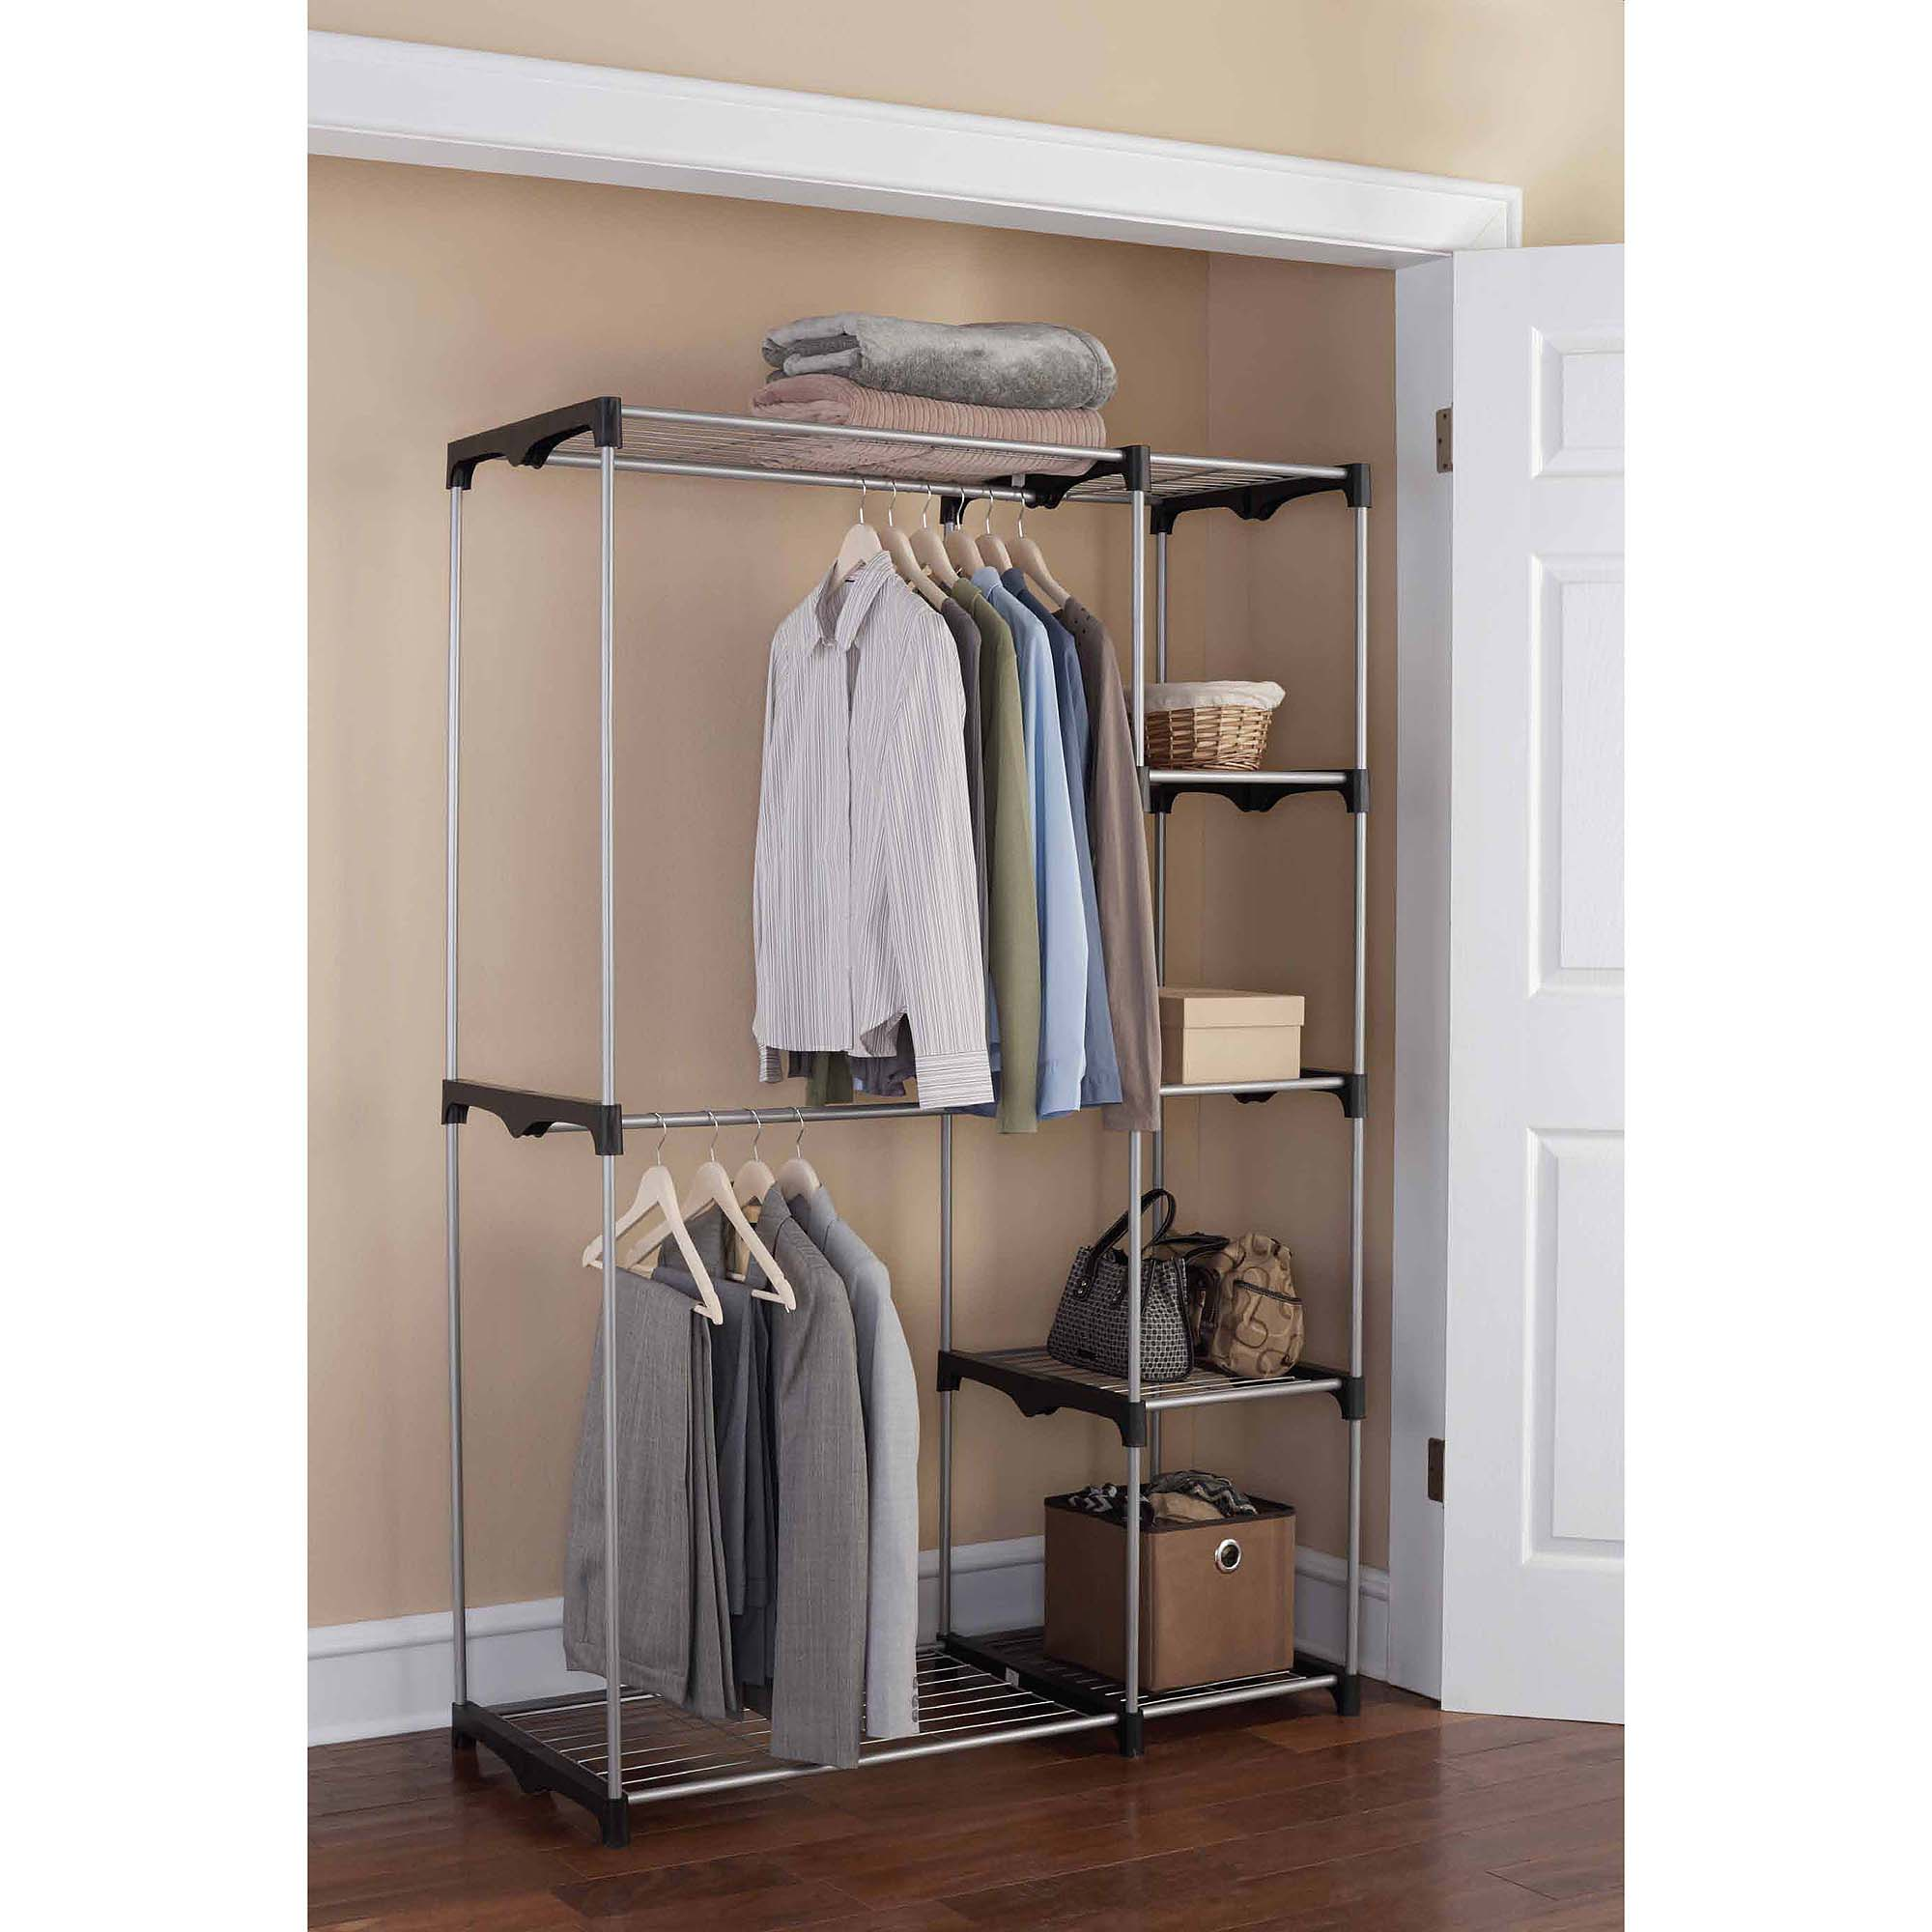 Mainstays Wire Shelf Closet Organizer, Black/Silver